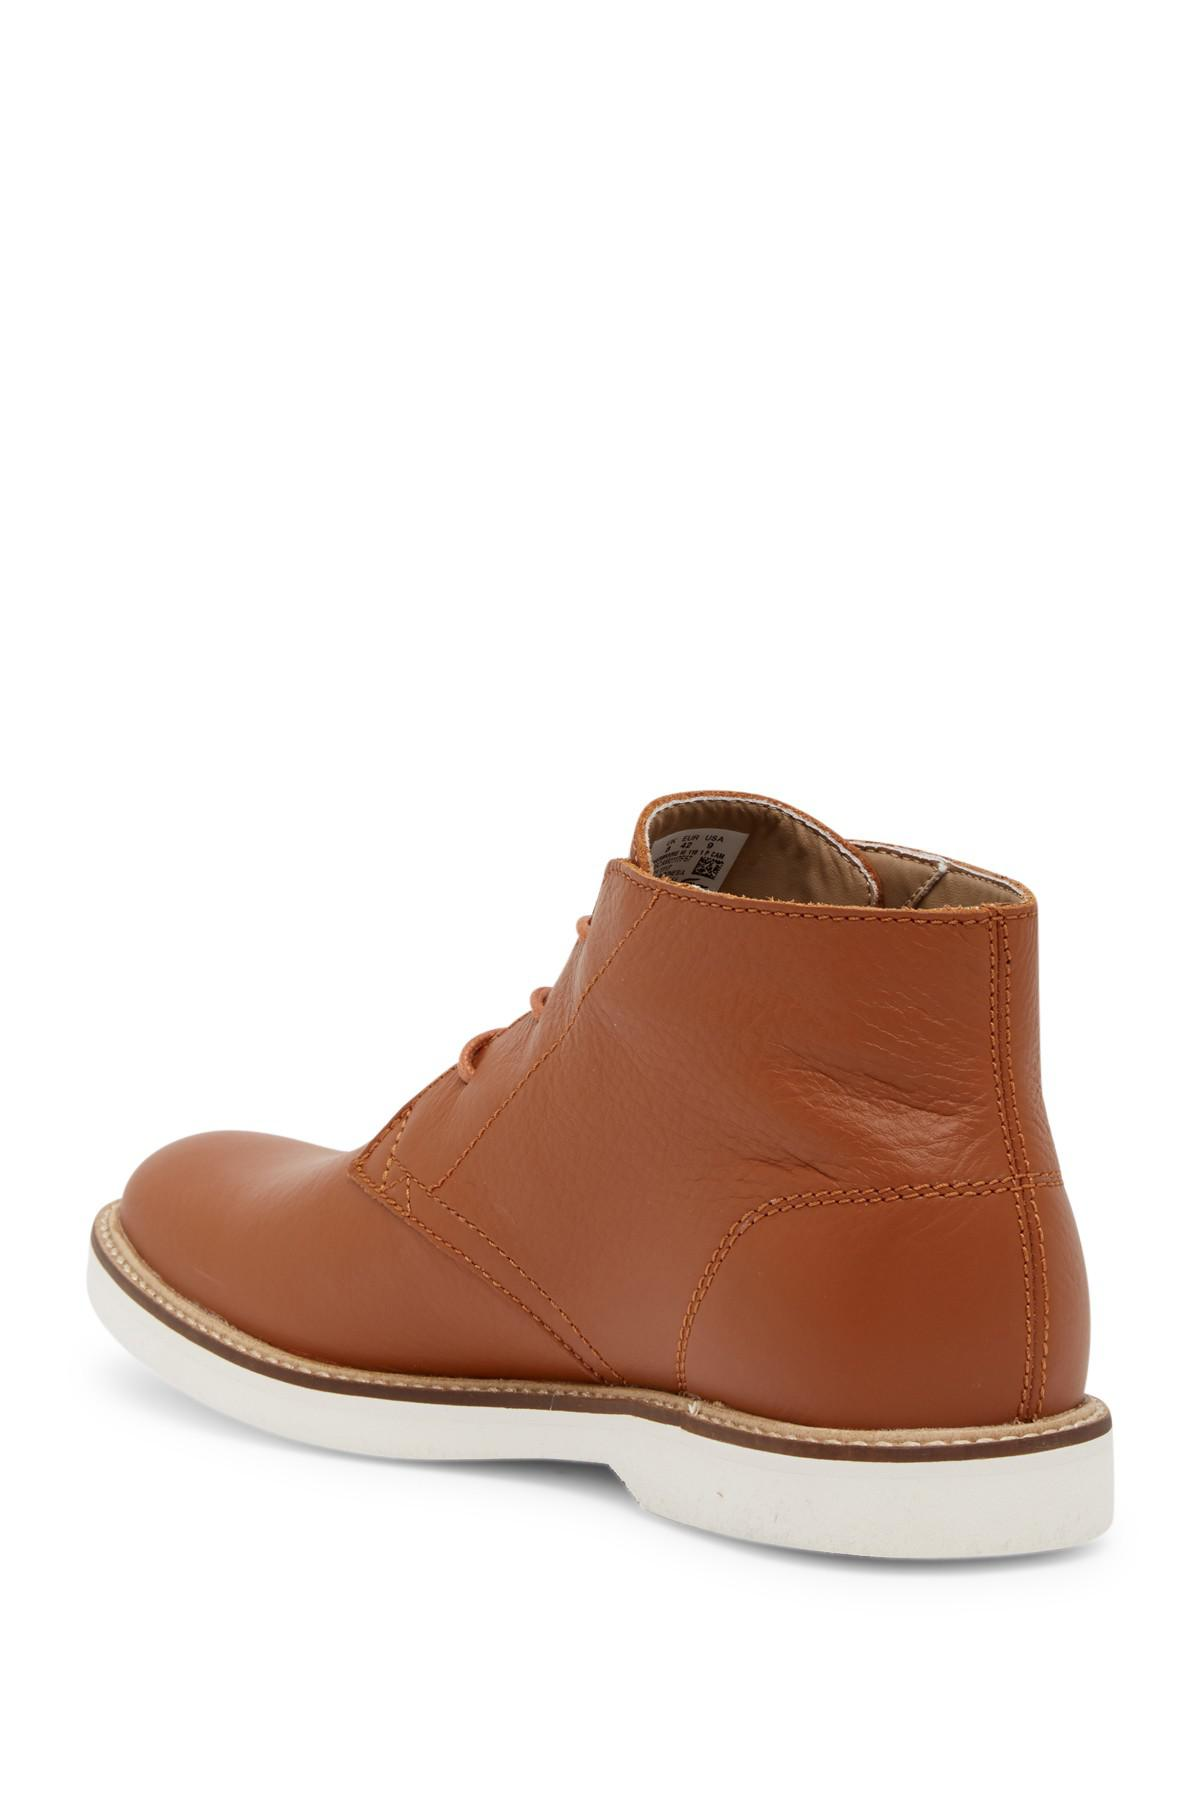 7417c52f4de2d4 Lyst - Lacoste Sherbrooke 118 Chukka Boot in Brown for Men